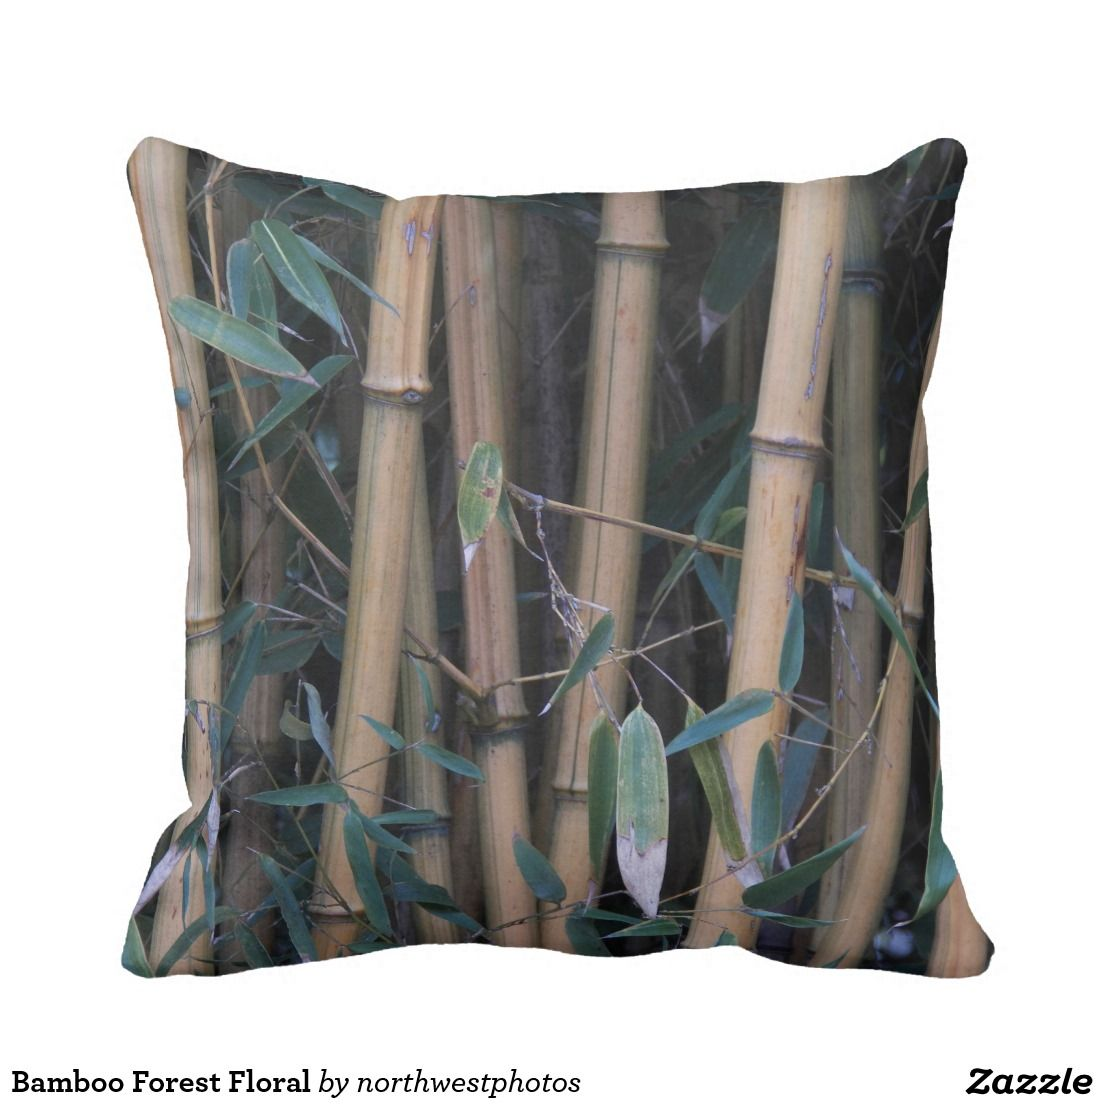 Bamboo Forest Floral Throw Pillow